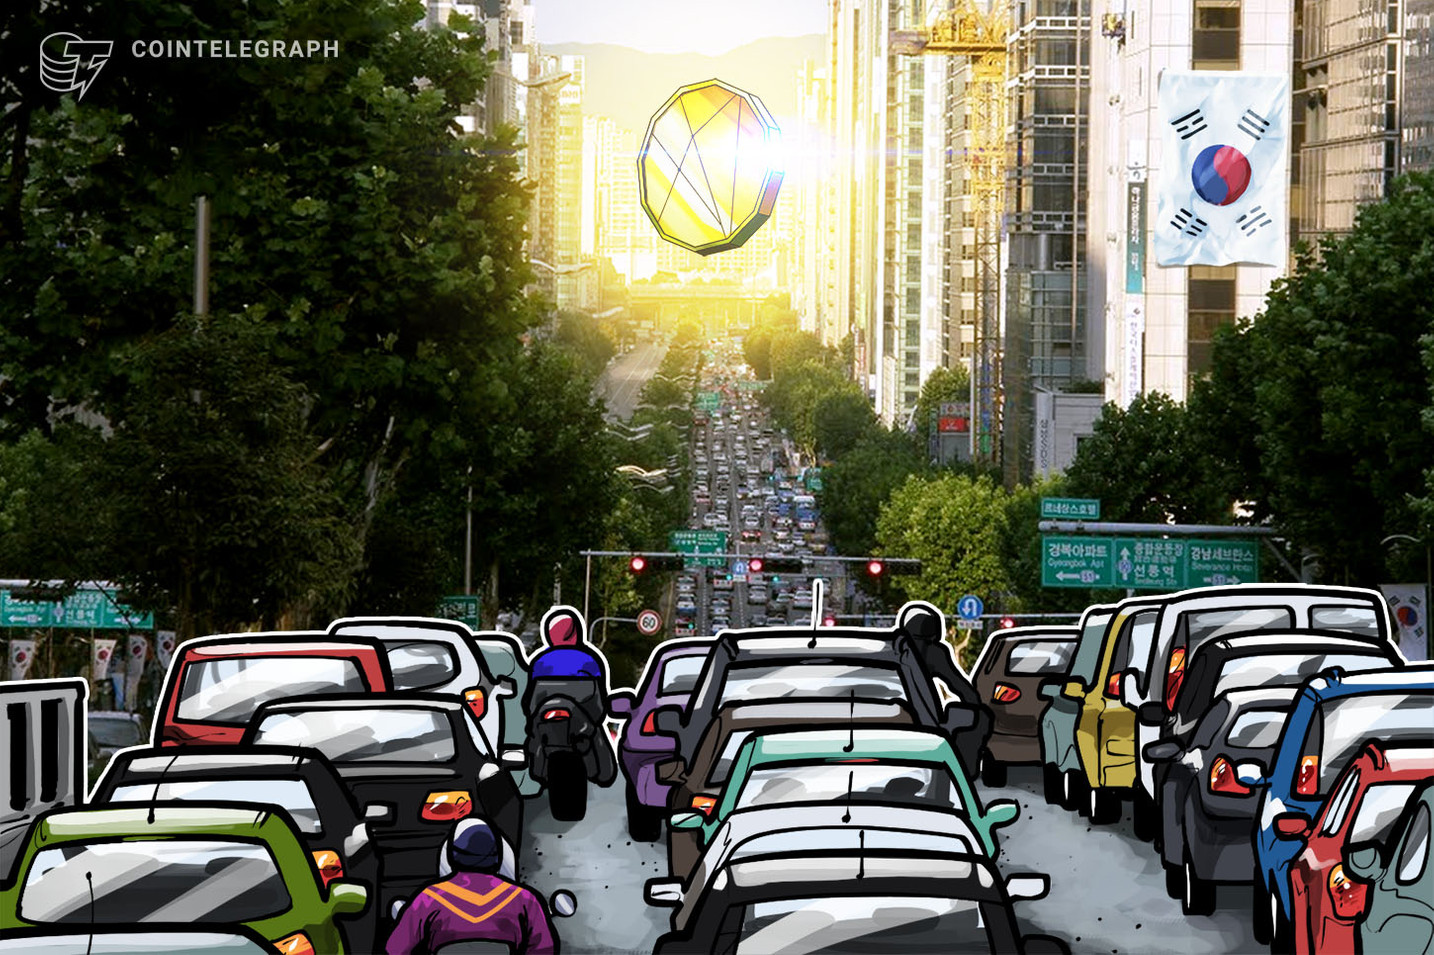 Korea: Opposition Party Boasts Pro-Crypto Policy in Contrast to Gov't